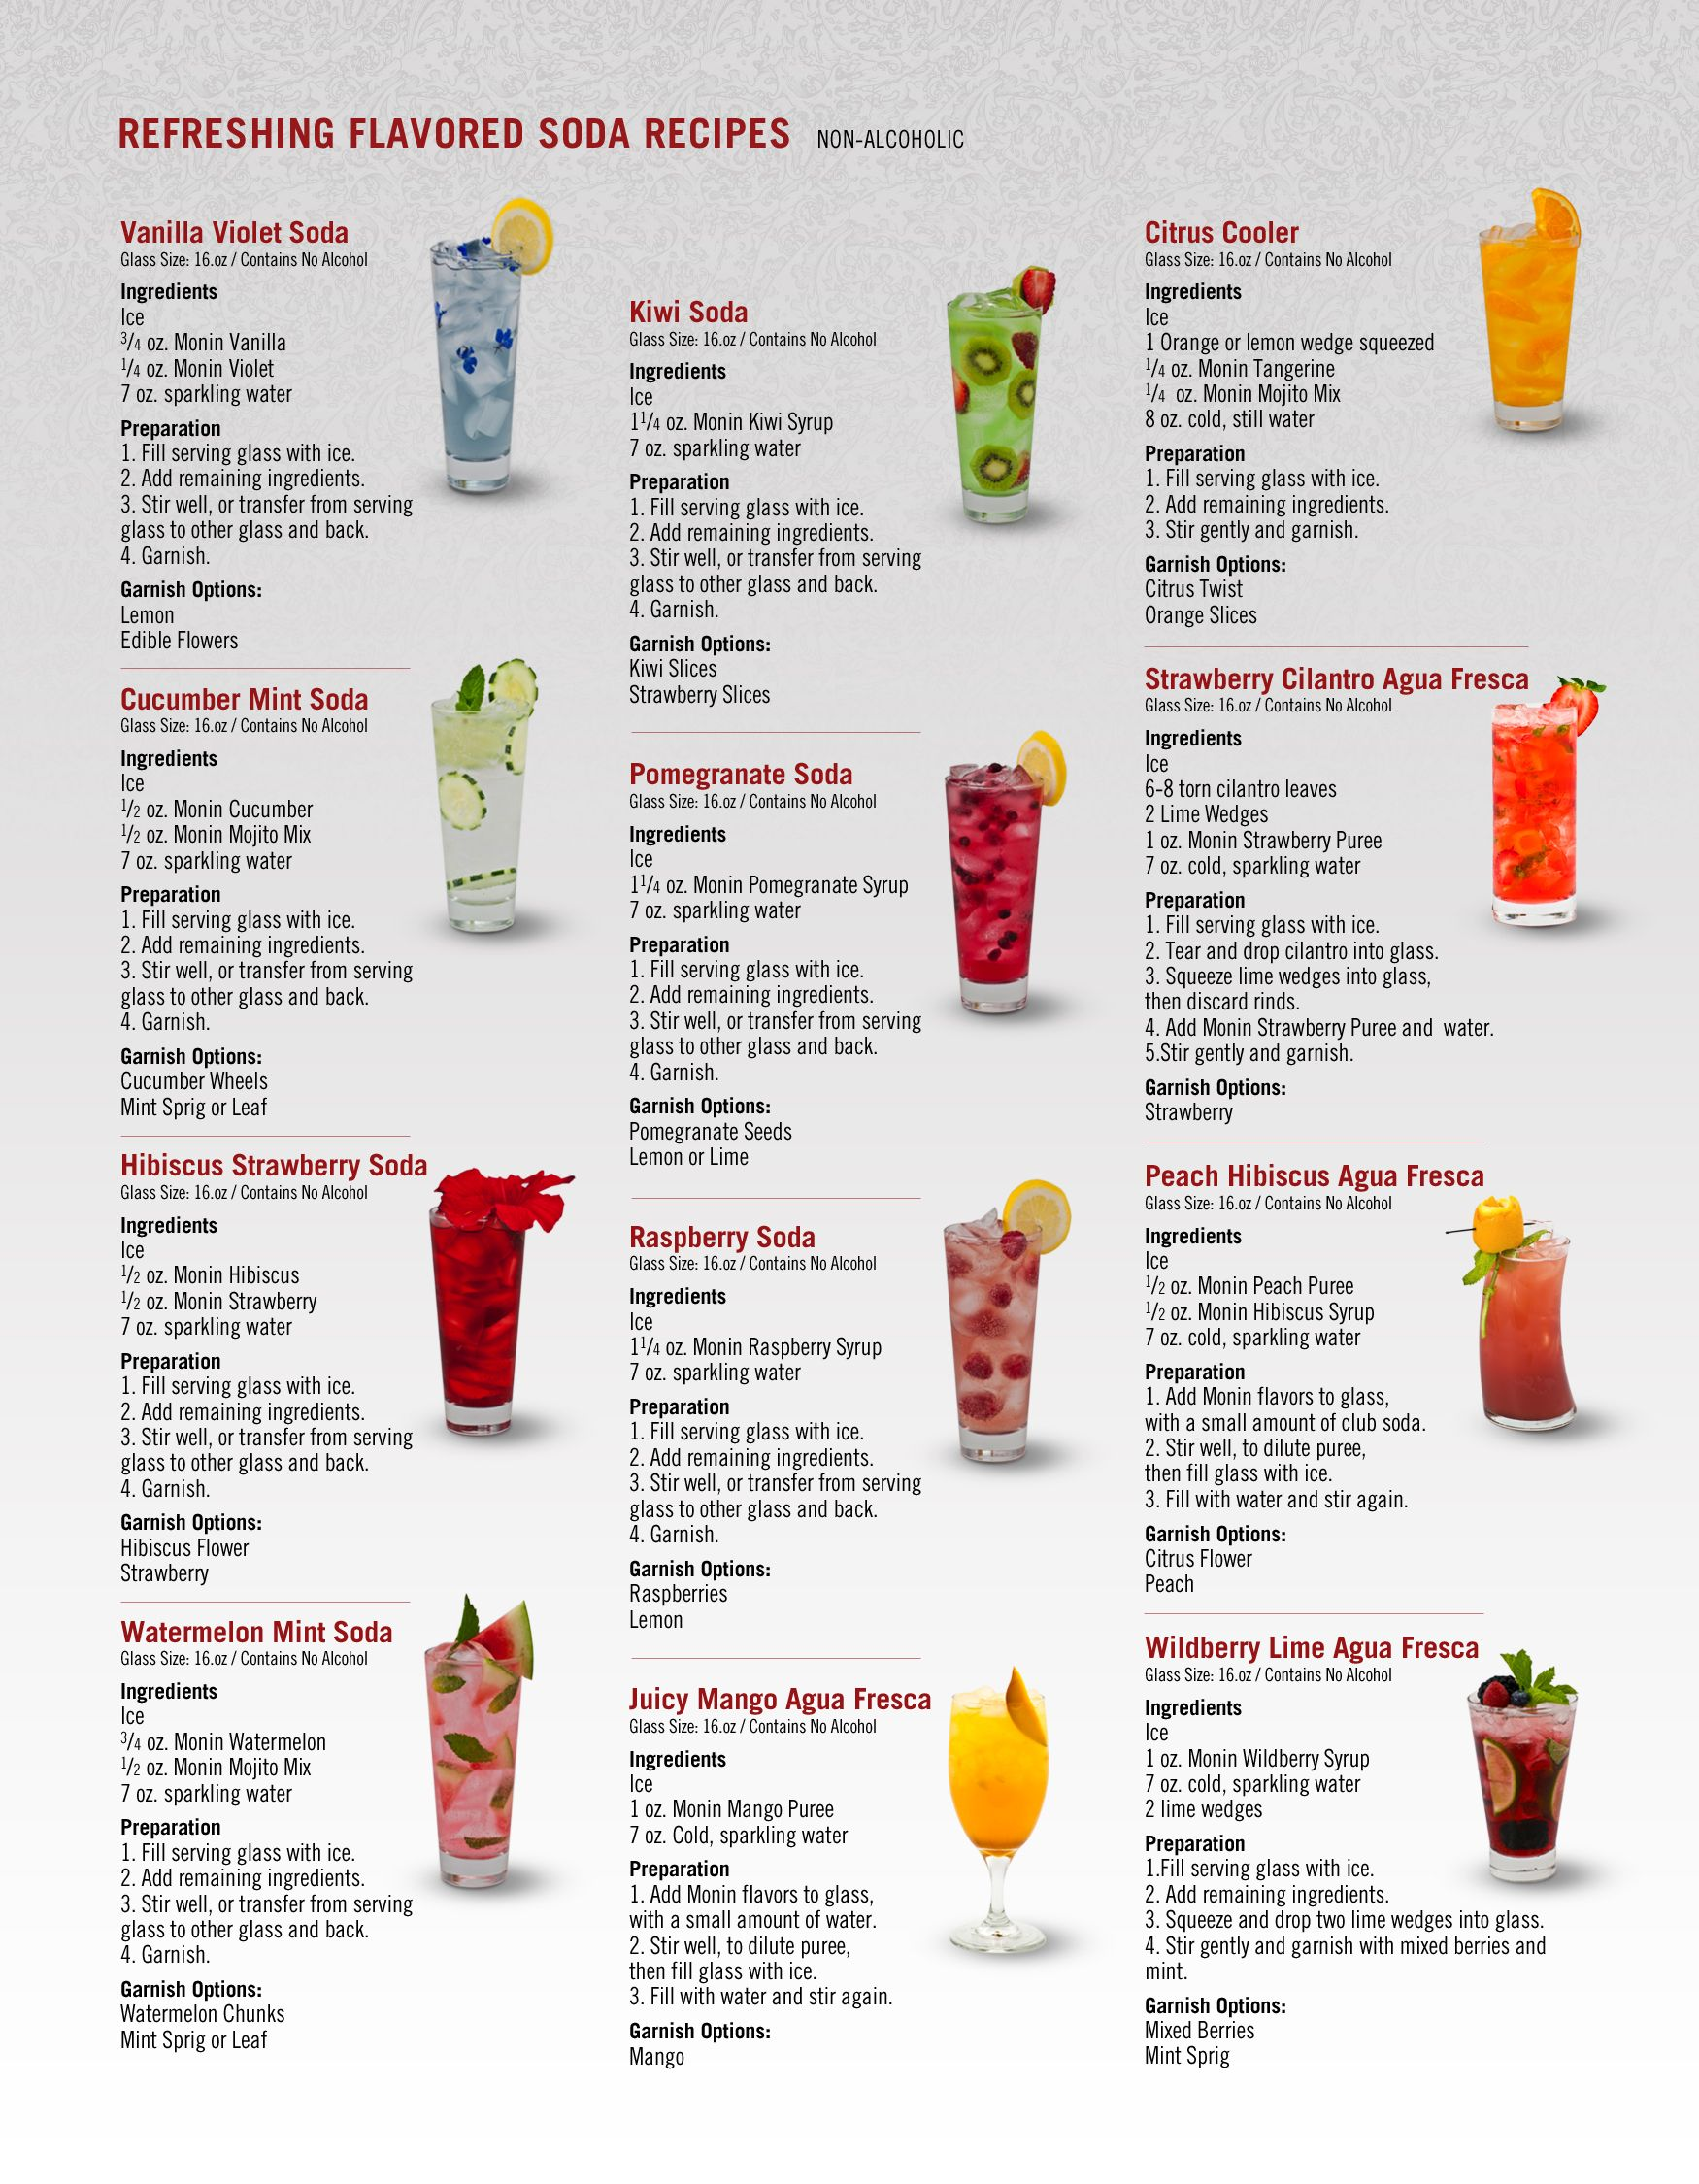 refreshing flavored italian soda recipes made with